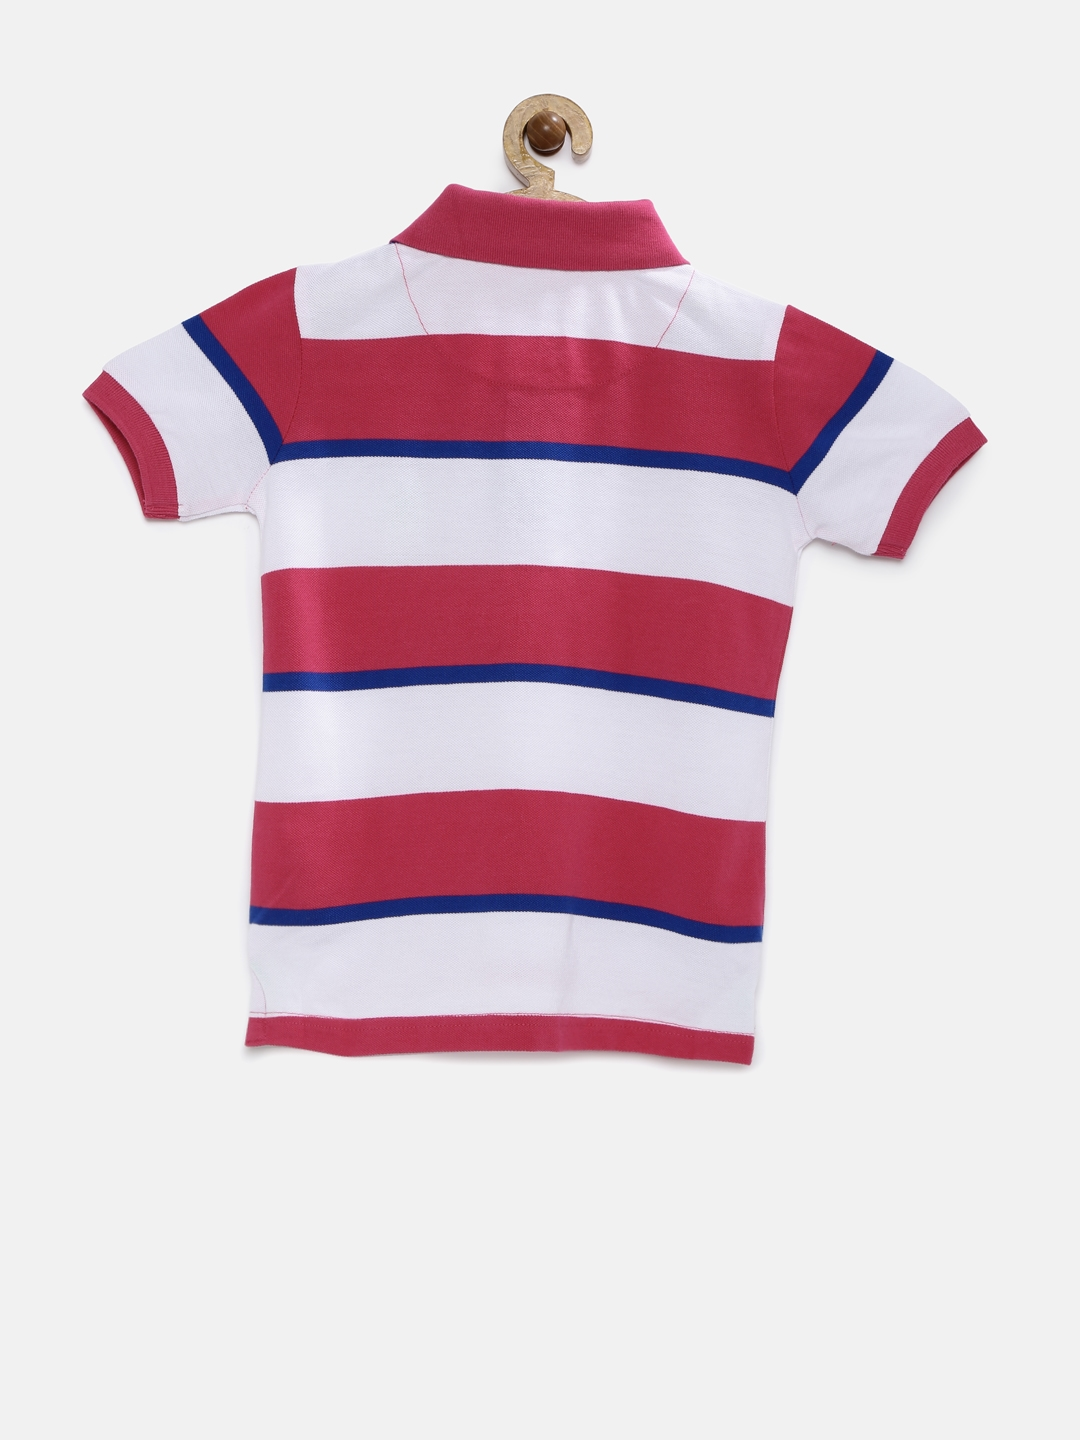 f6c9fe39fa Buy U.S. Polo Assn. Kids Boys White Striped Polo T Shirt - Tshirts ...